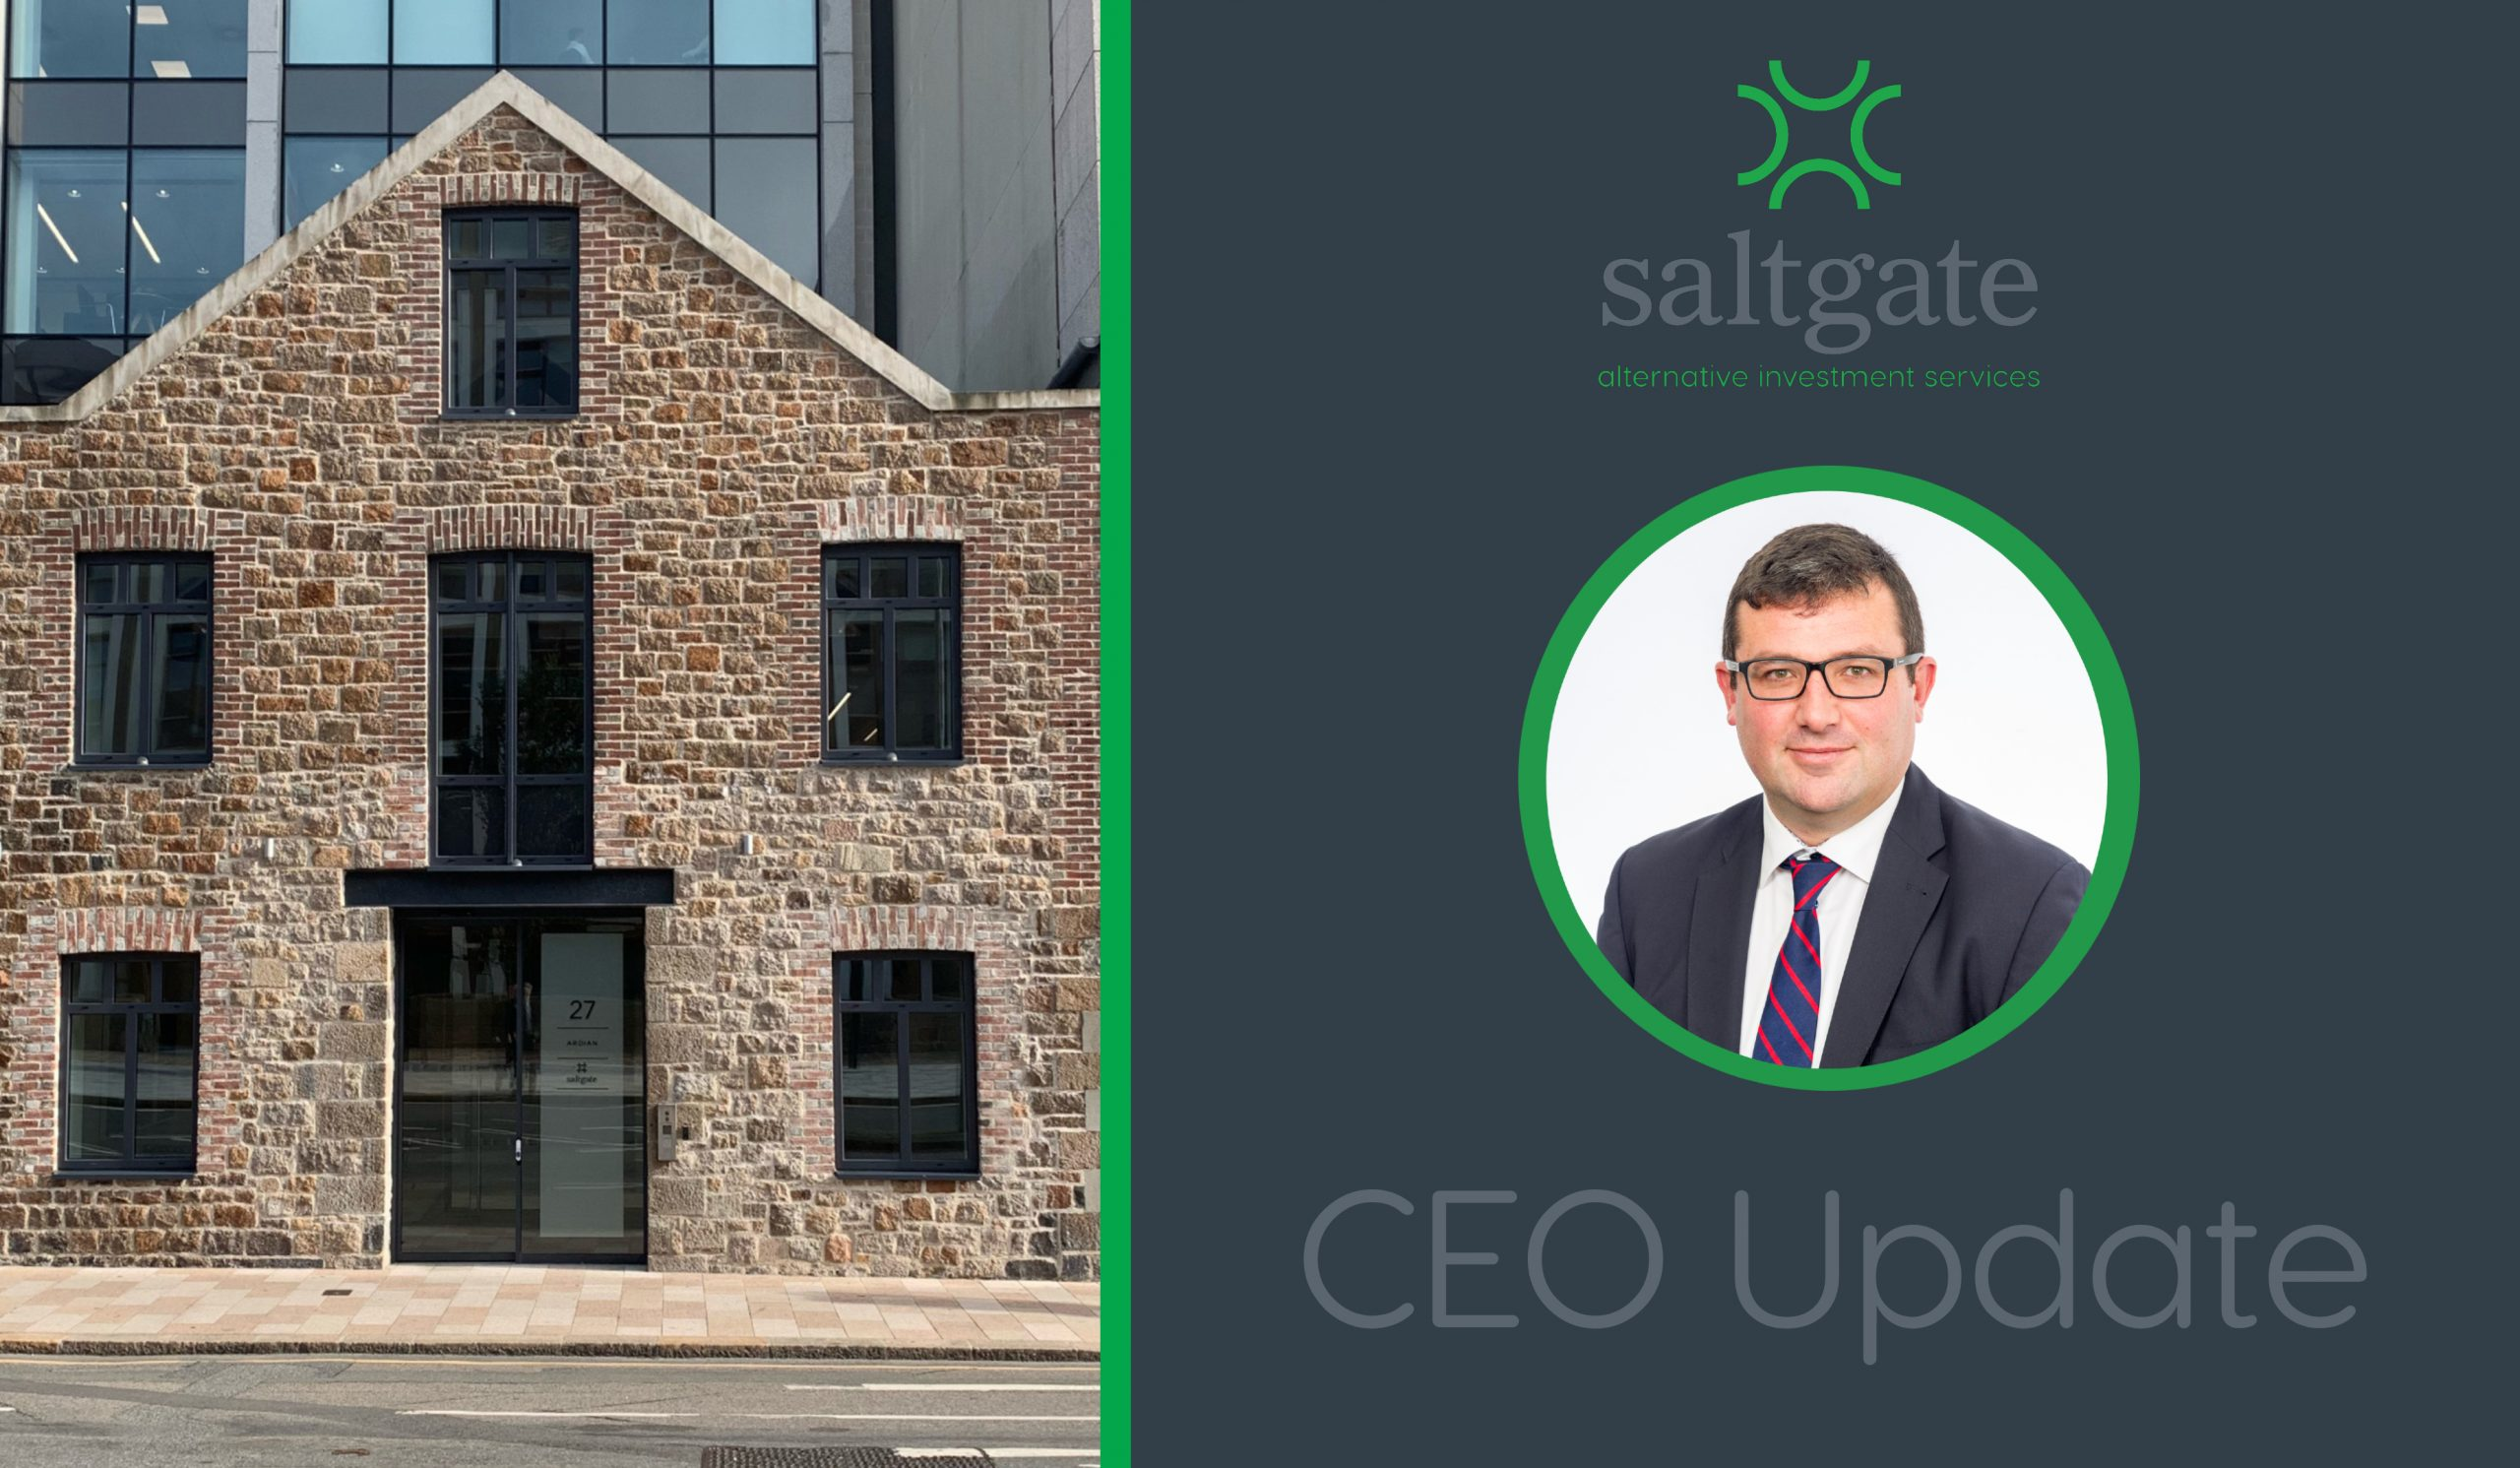 CEO Update from Simon Riley